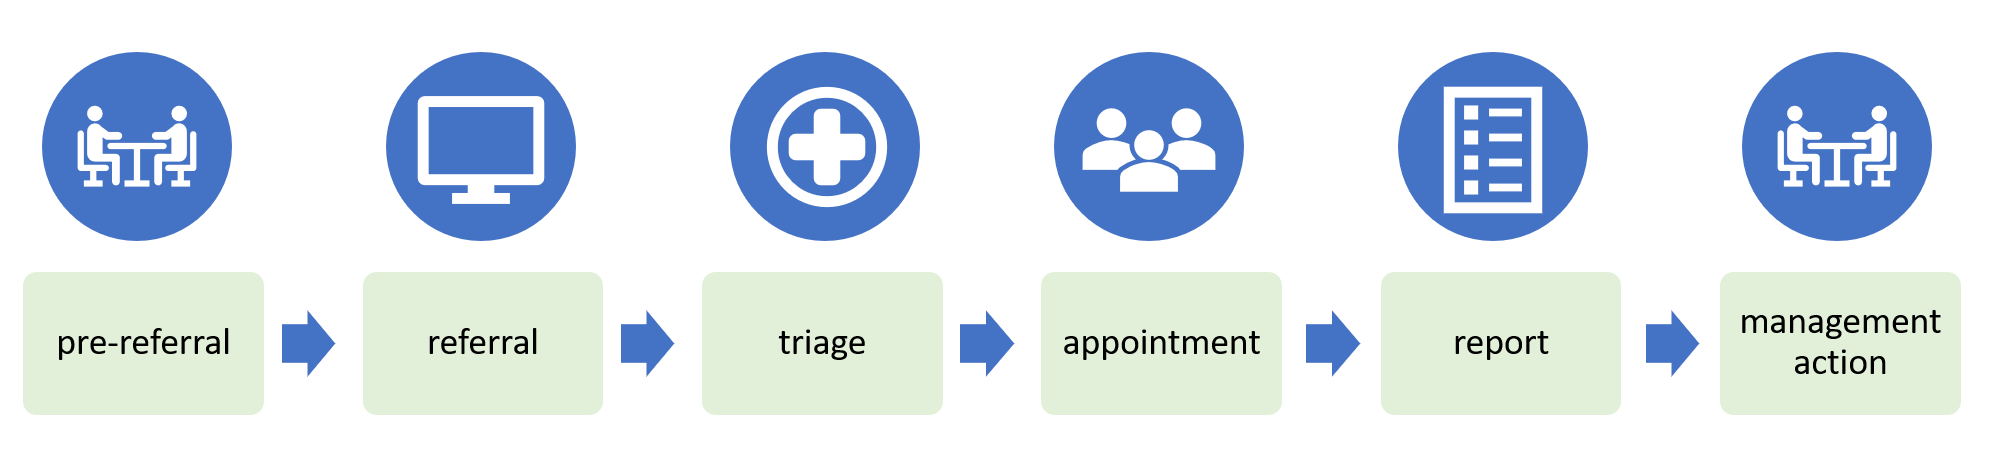 Occupational Health management referral process process flow